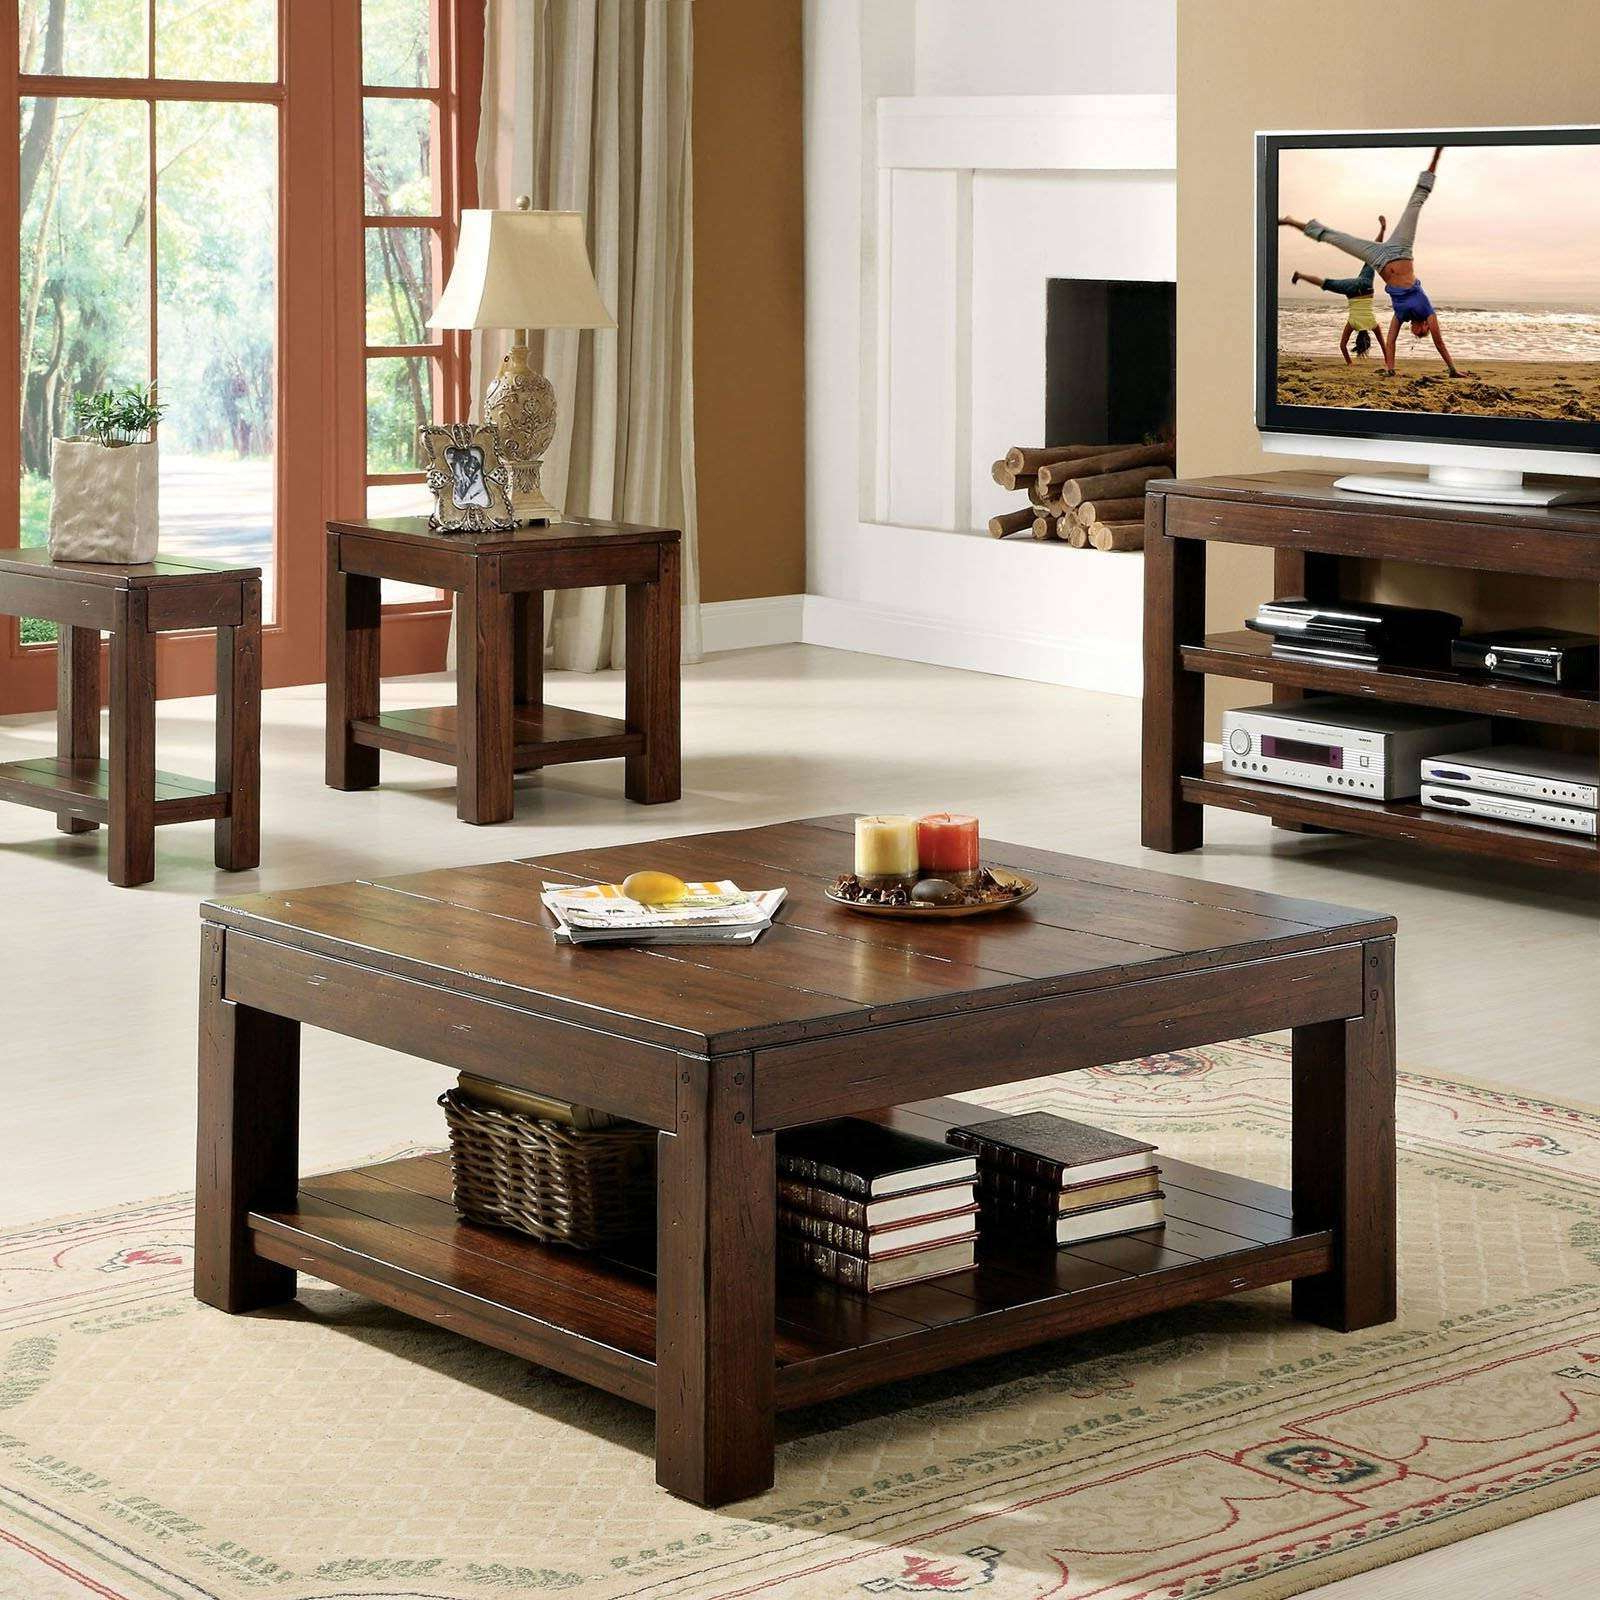 Tv Stand Coffee Table Sets Regarding 2018 8 Matching Tv Cabinet And Coffee Table Photos (View 5 of 20)